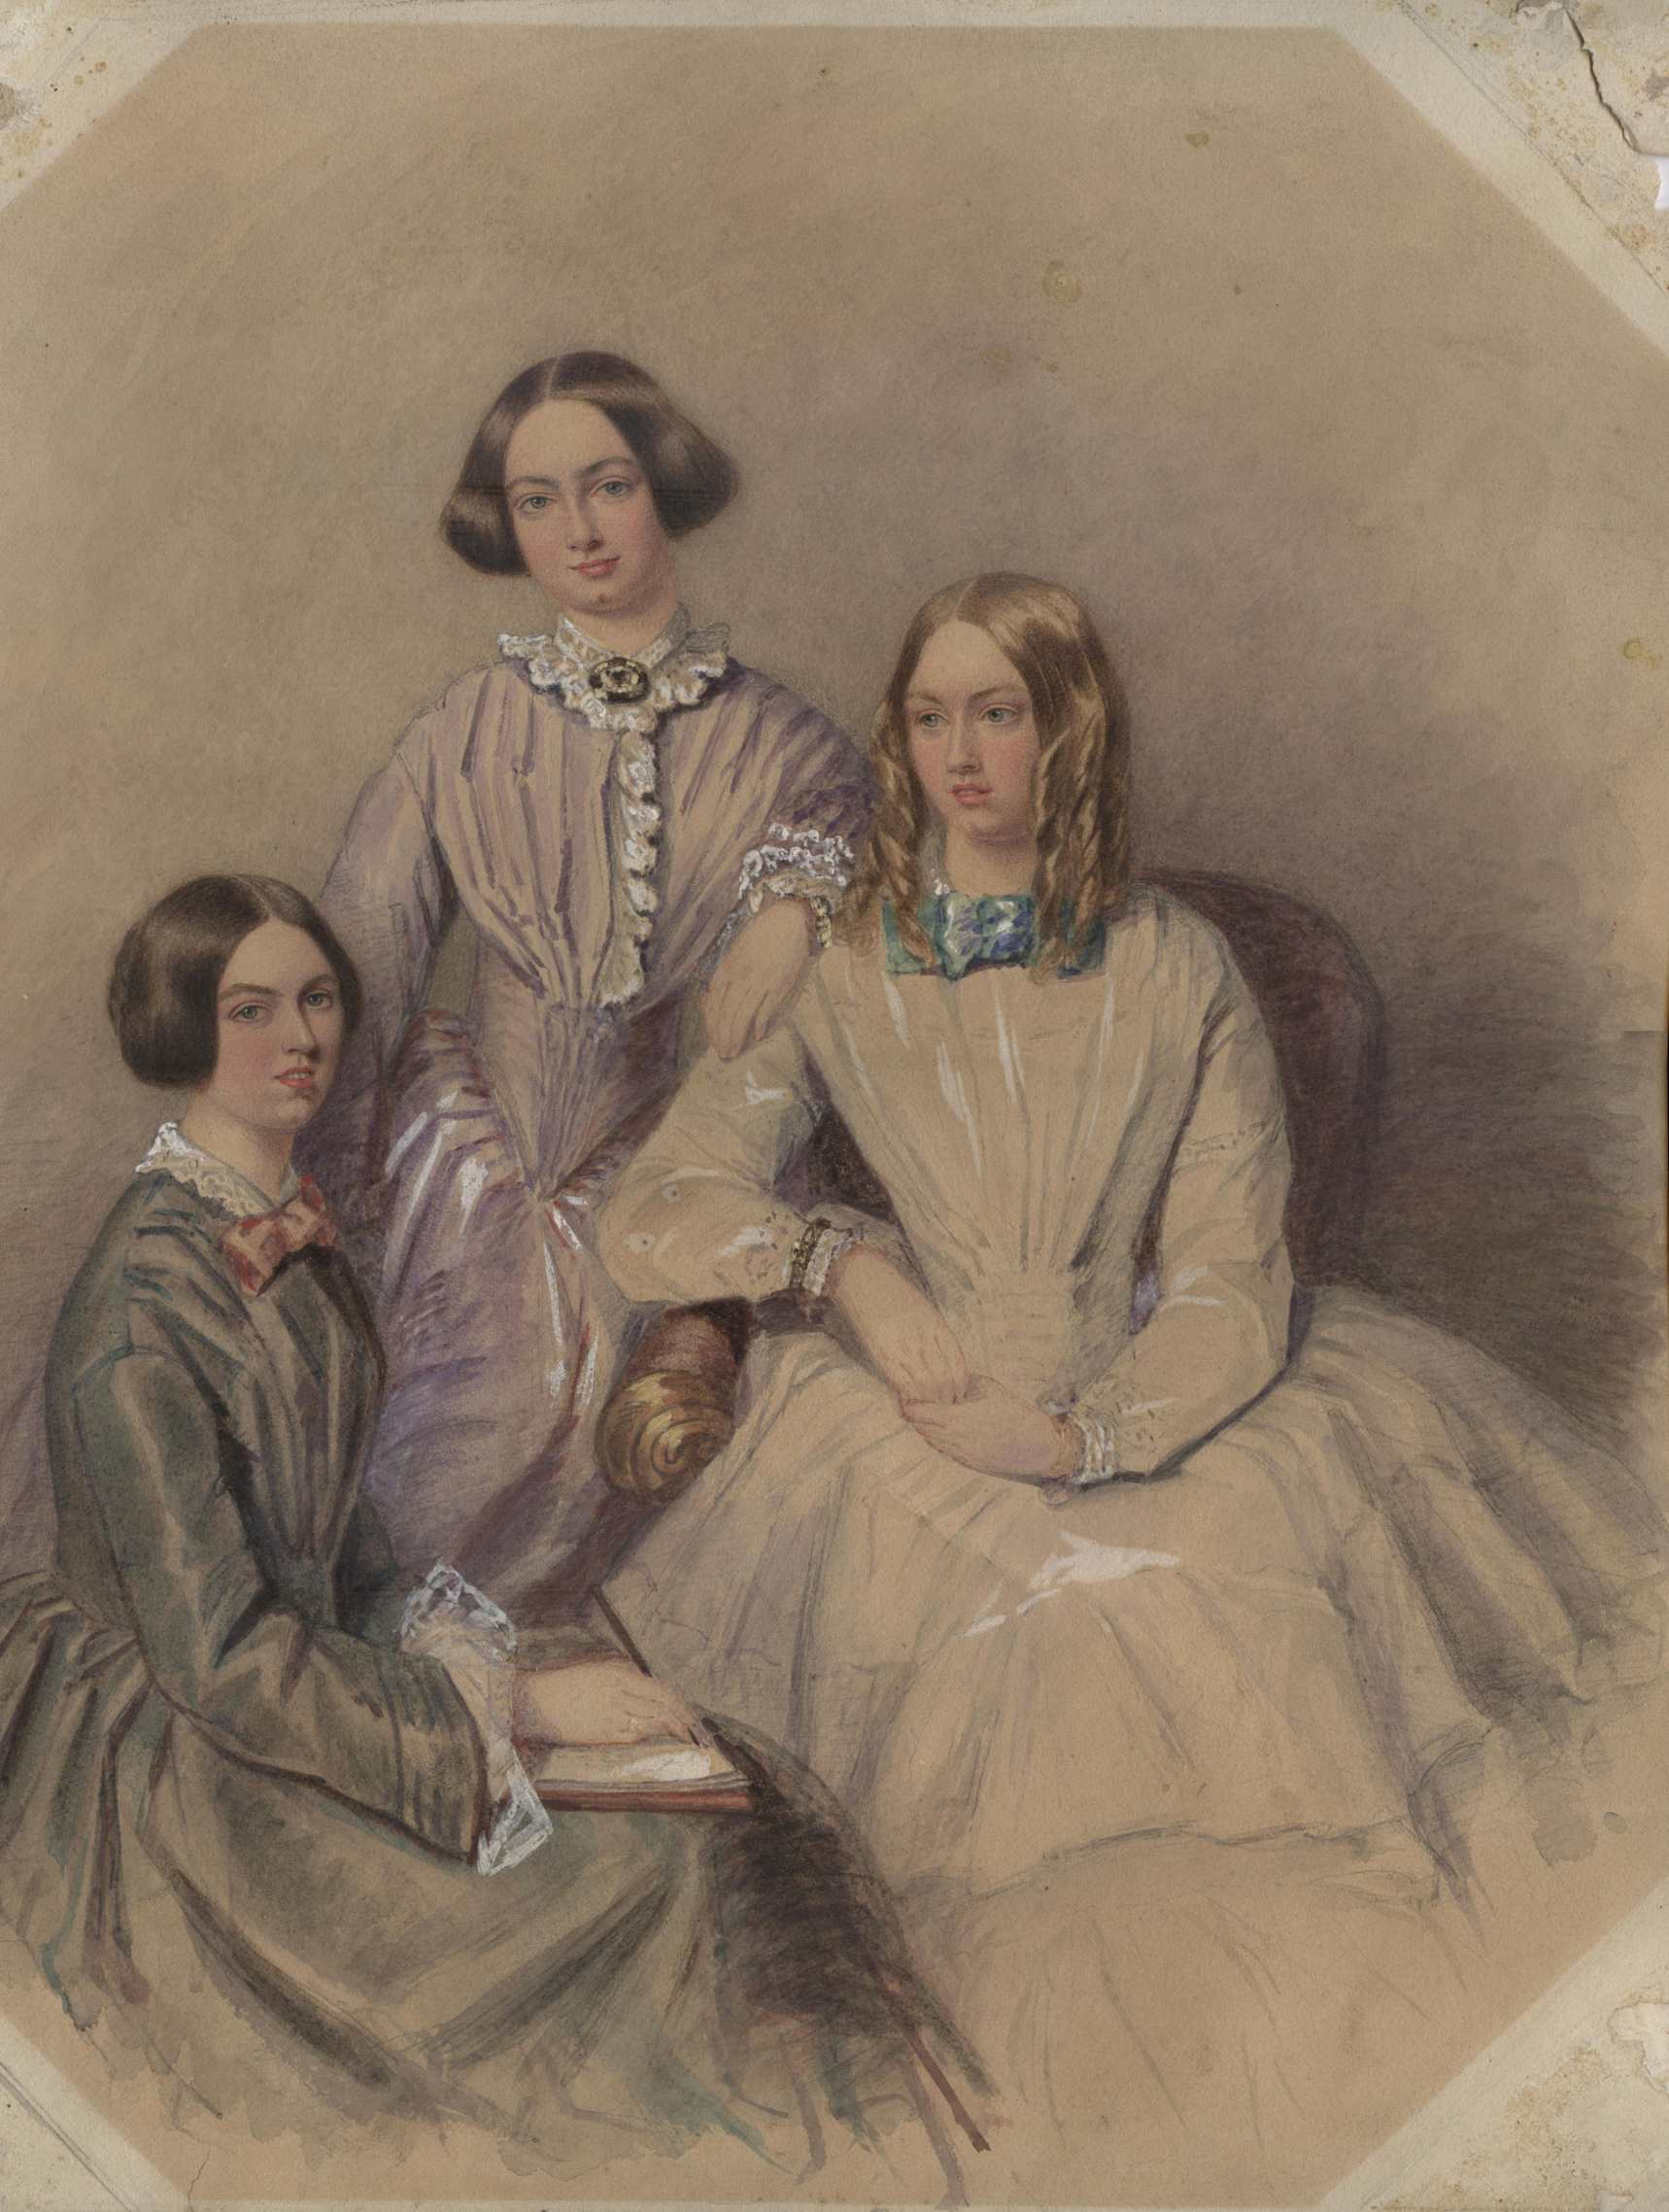 sexism in the novels jane eyre by emily bronte and pride and prejudice by jane austen Wuthering heights, jane eyre and pride  throughout the novels wuthering heights by emily bronte and jane eyre by  in jane austen's novel pride and prejudice, .